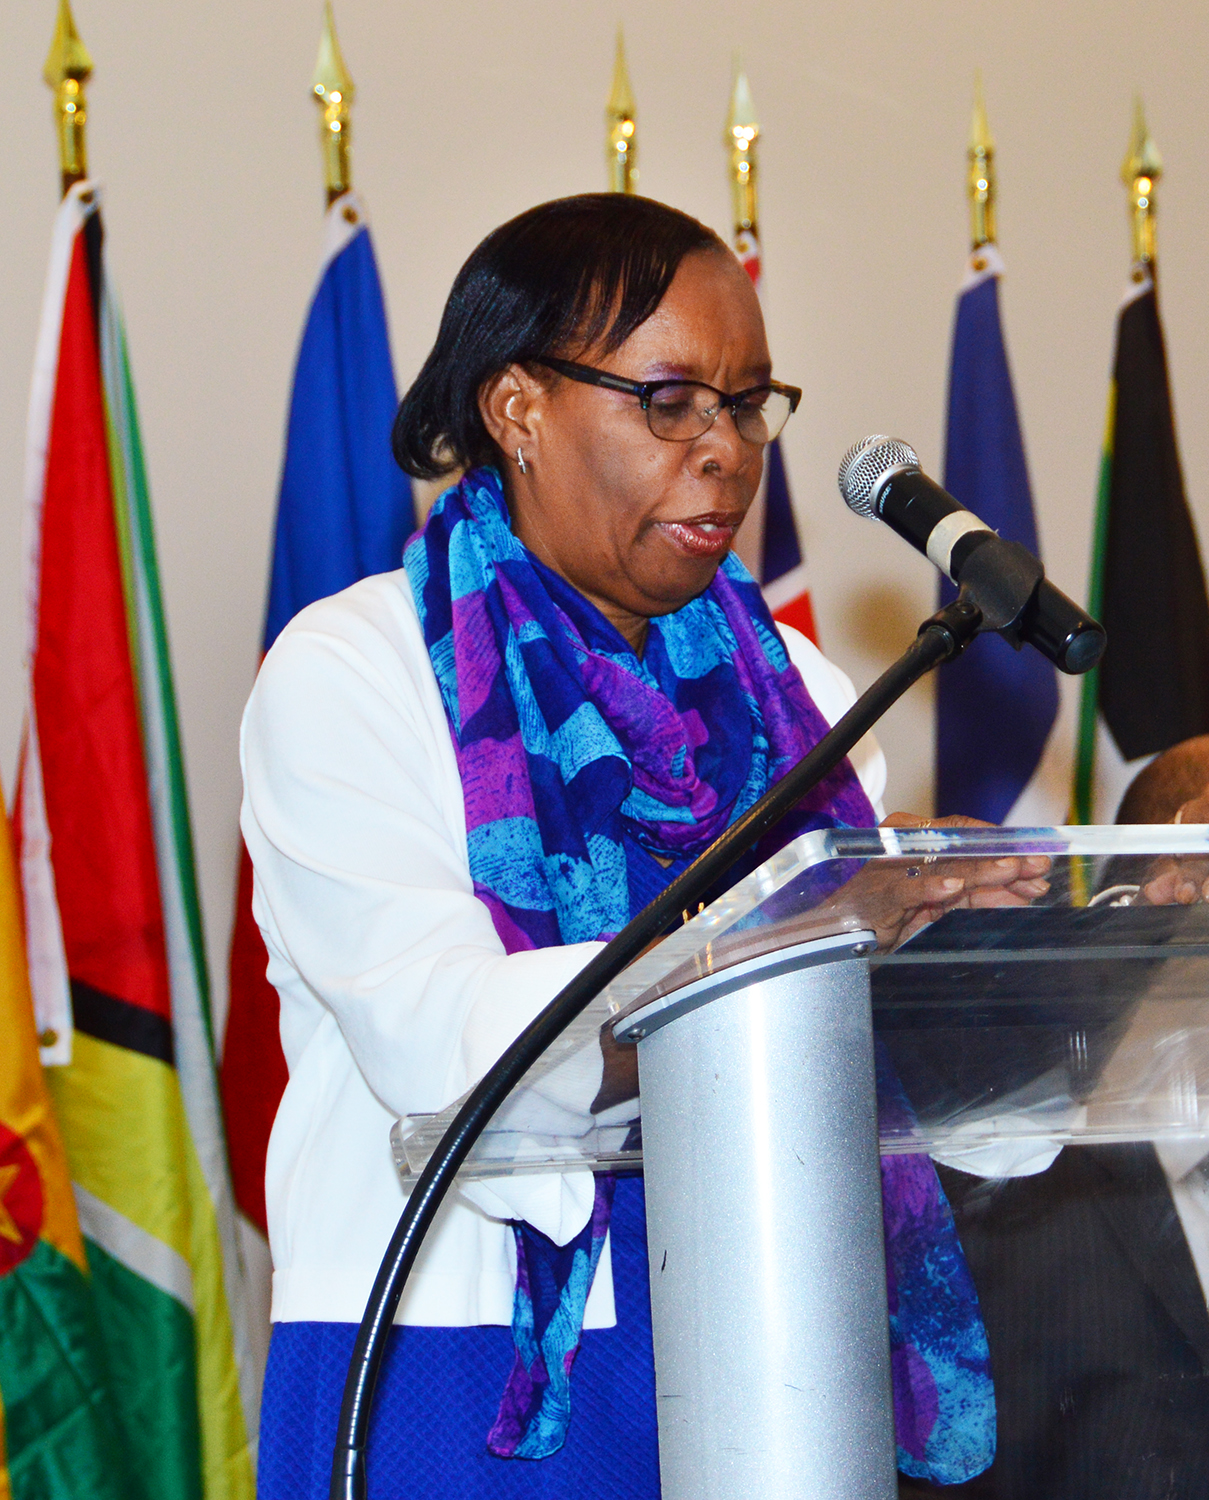 Dr. Philomen Harrison, Project Director, Regional Statistics, CARICOM Secretariat, addresses the opening ceremonyClick and drag to move Dr. Philomen Harrison, Project Director, Regional Statistics, CARICOM Secretariat, addresses the opening ceremony